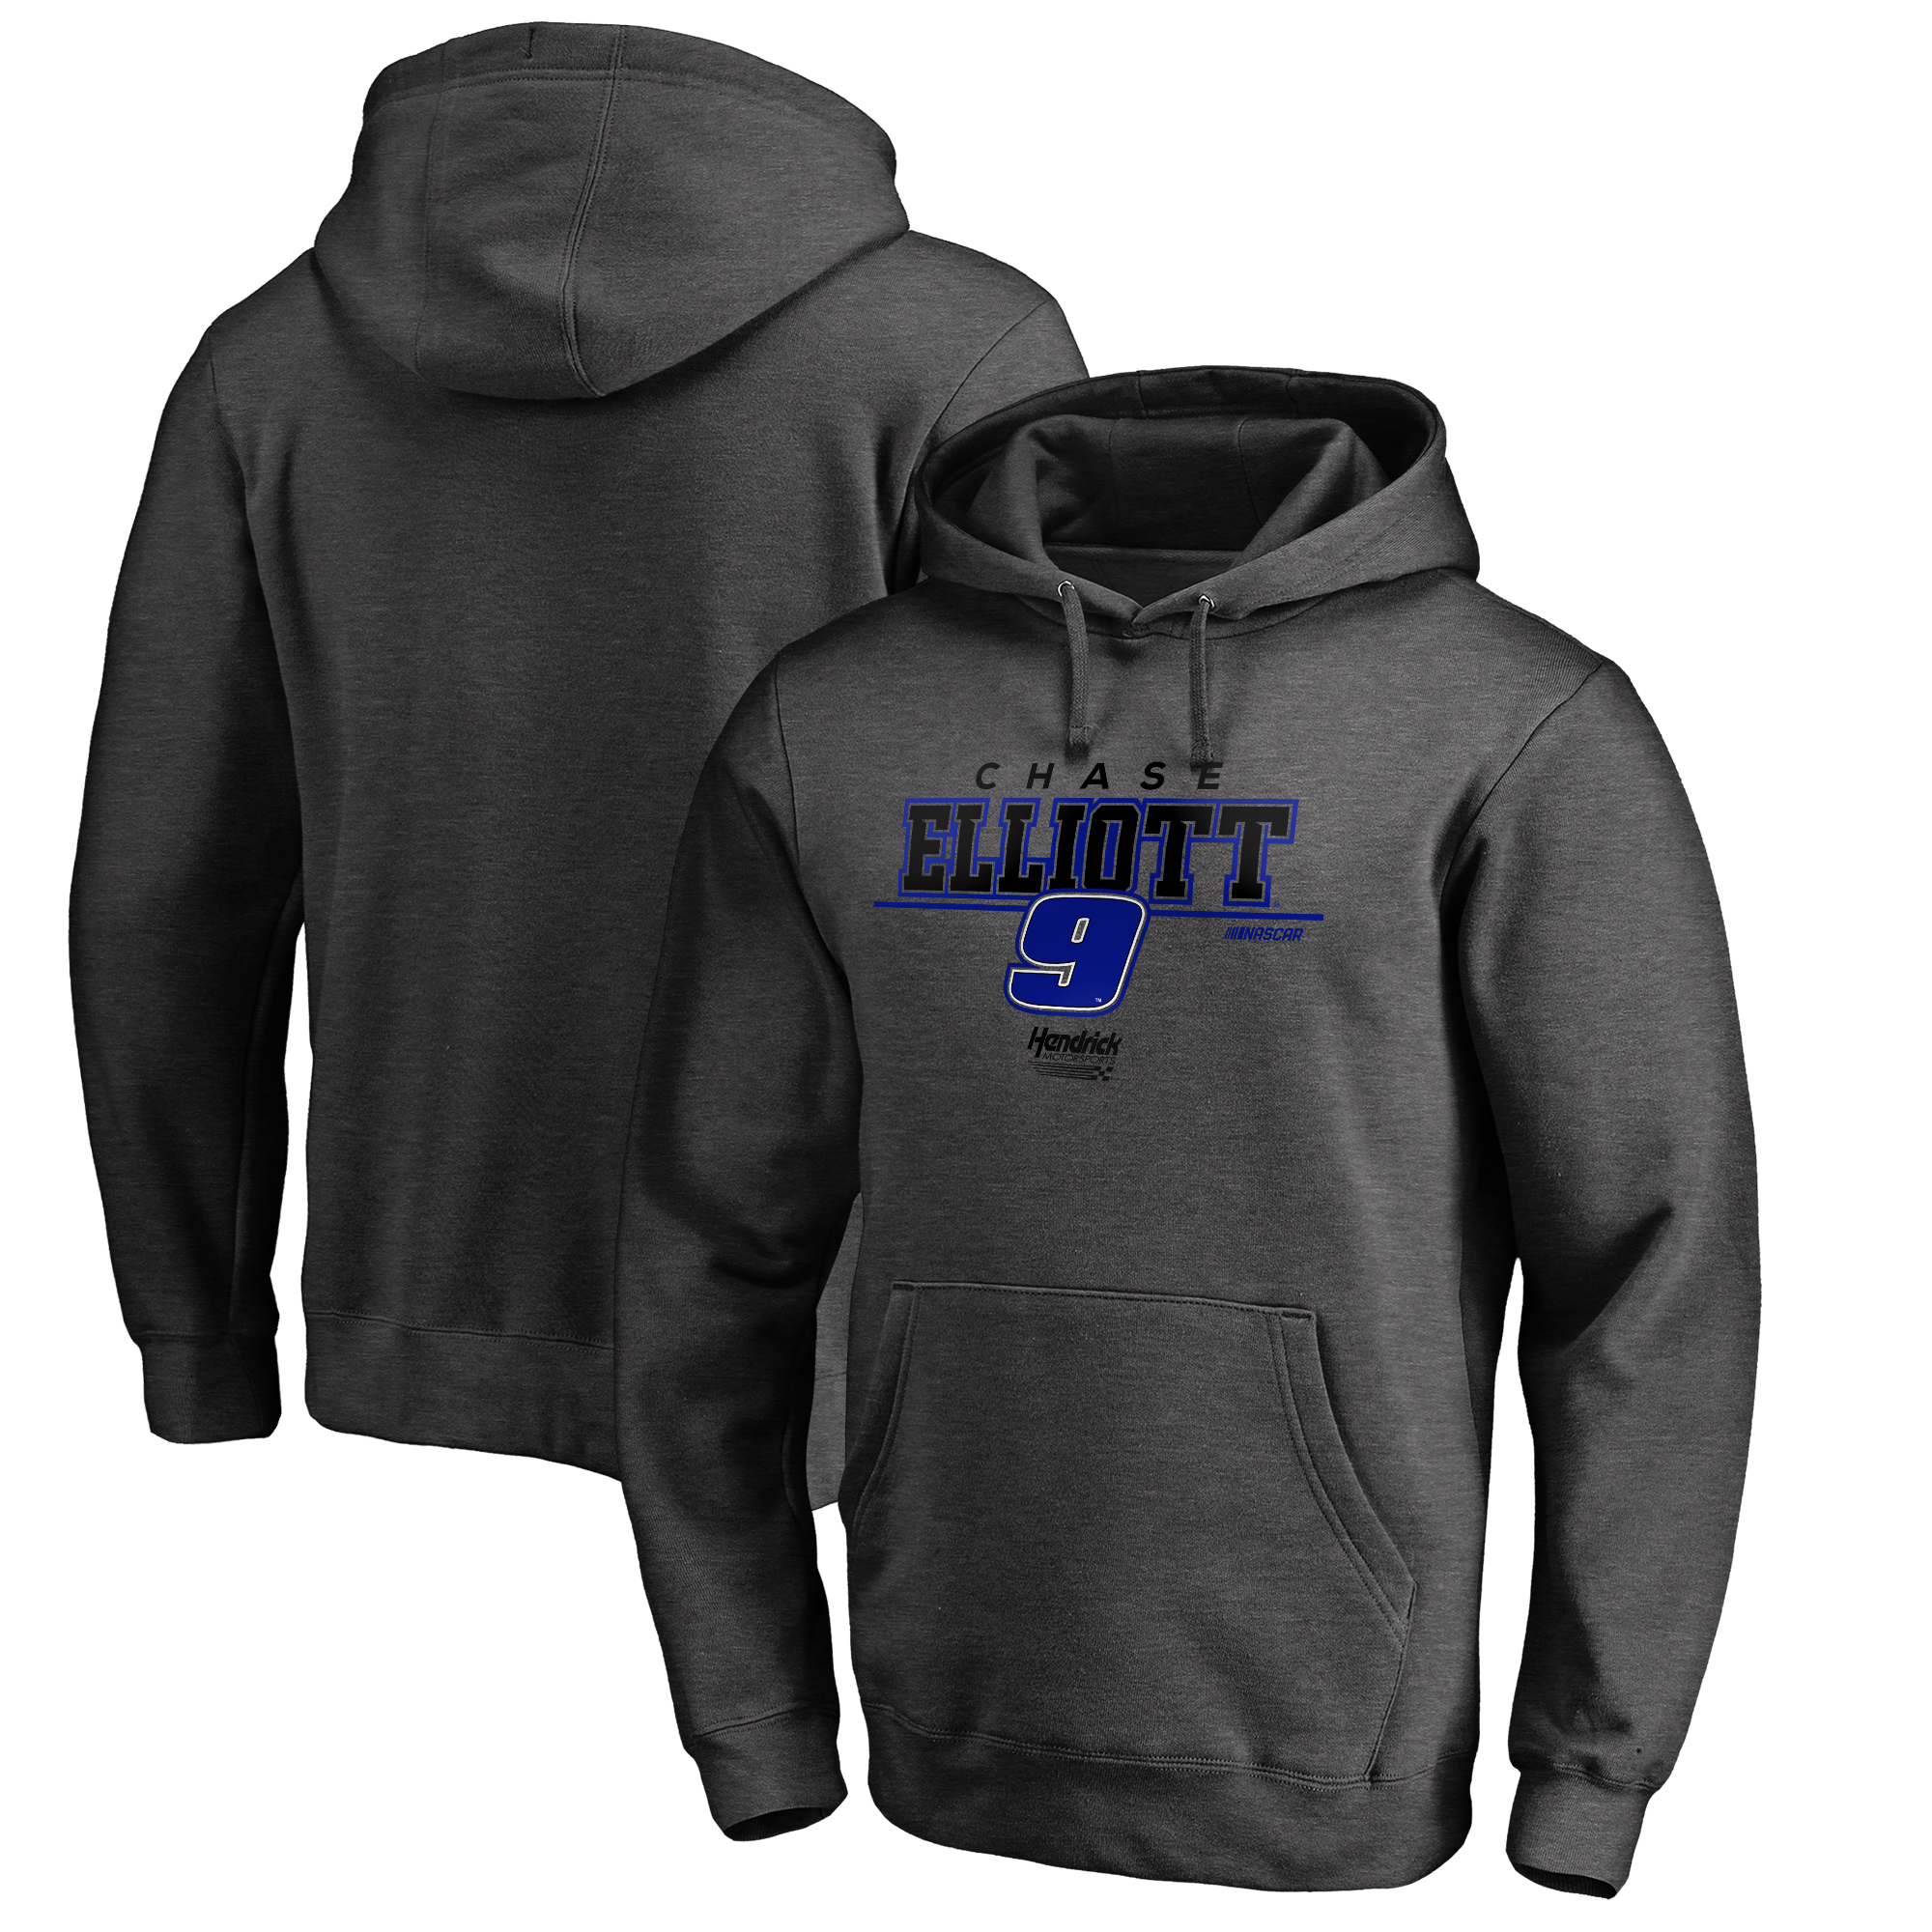 Chase Elliott Fanatics Branded Stealth Pop Verbiage Pullover Hoodie - Heathered Charcoal